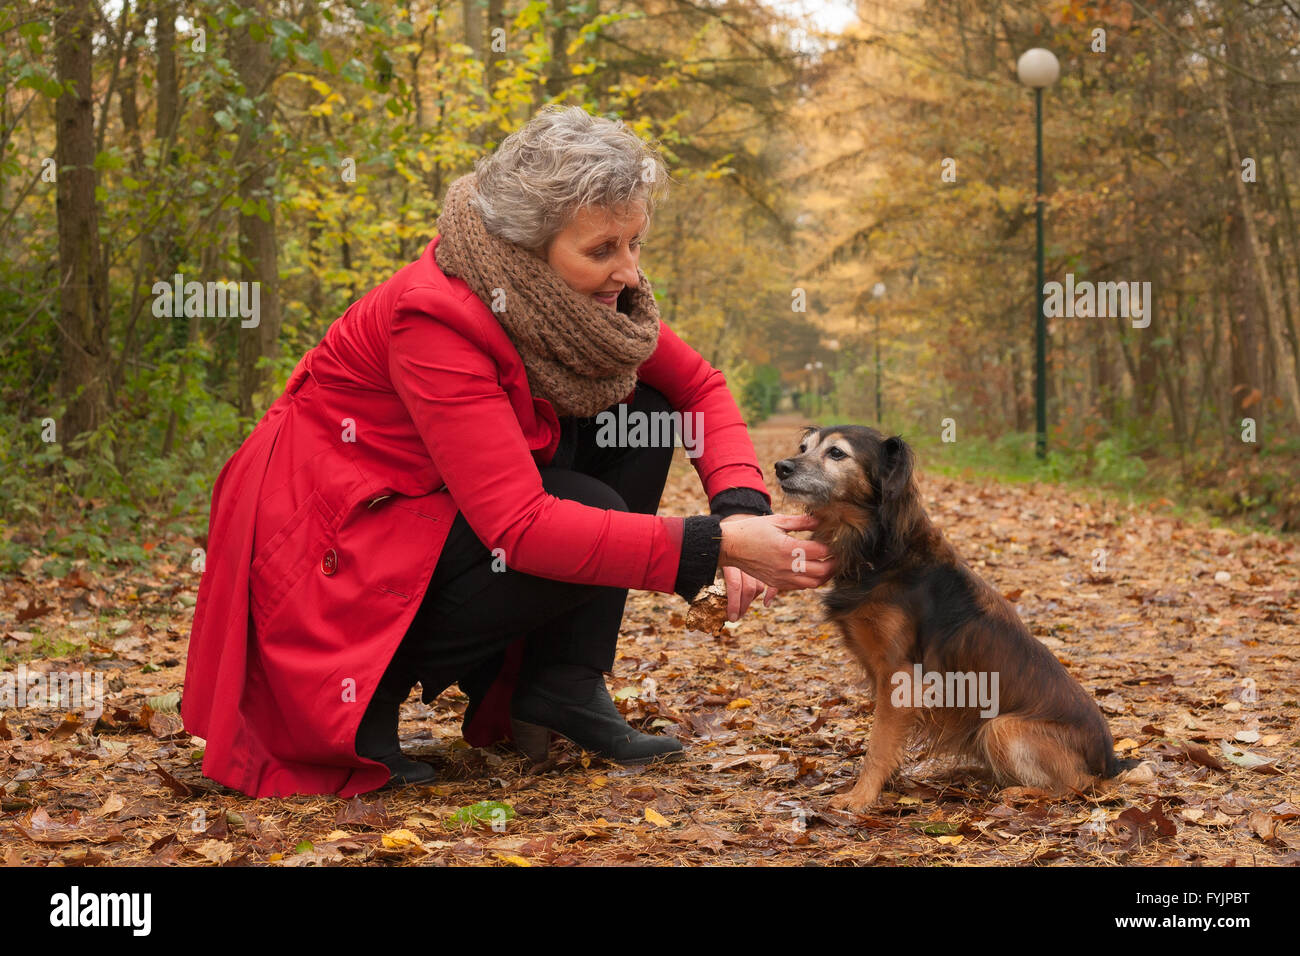 Retired woman is caring of her dog - Stock Image